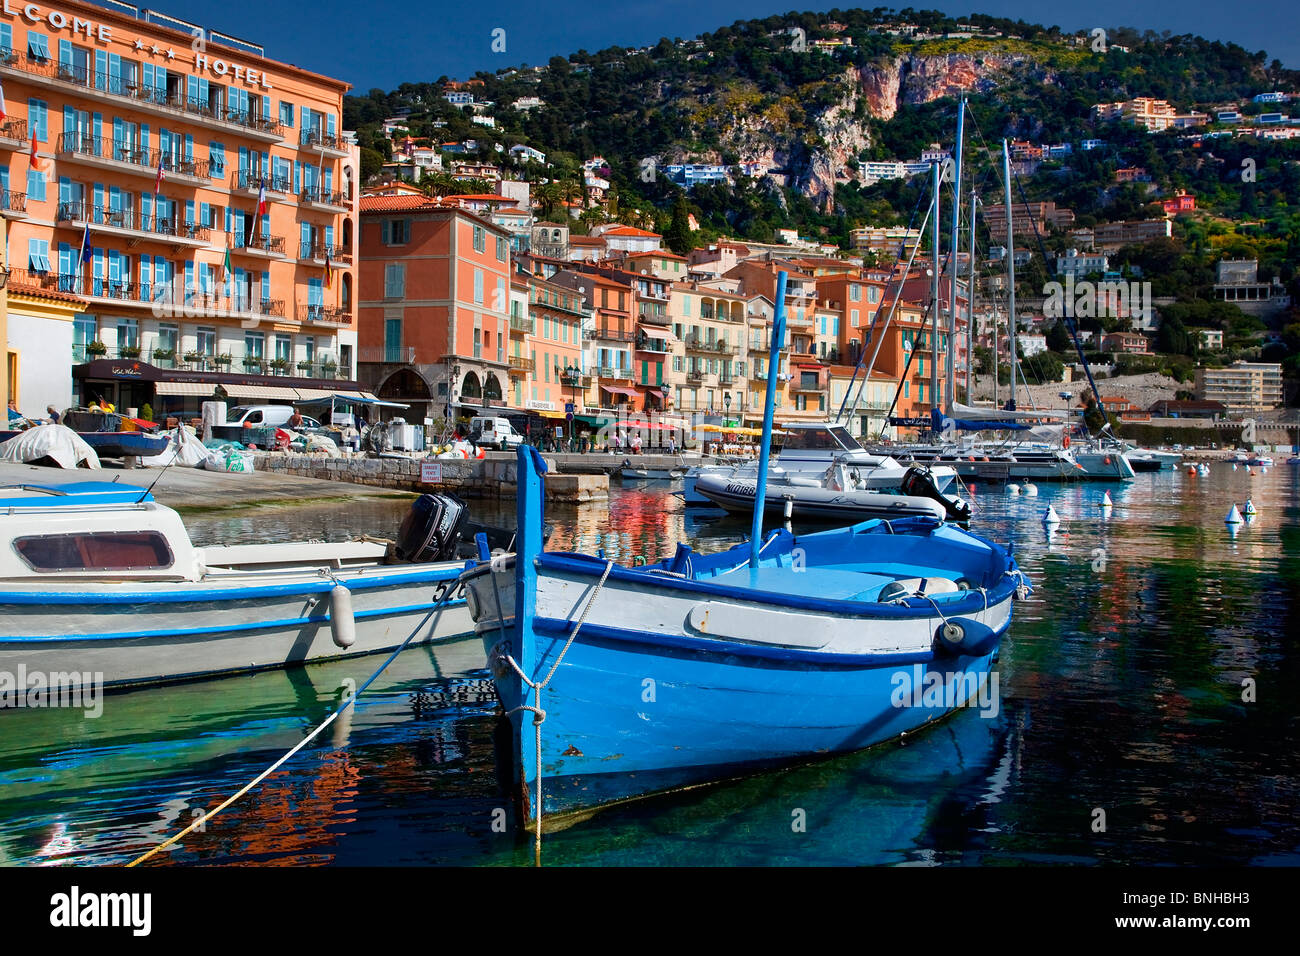 Europe, France, Alpes-Maritimes (06), Villefranche-sur-Mer - Stock Image